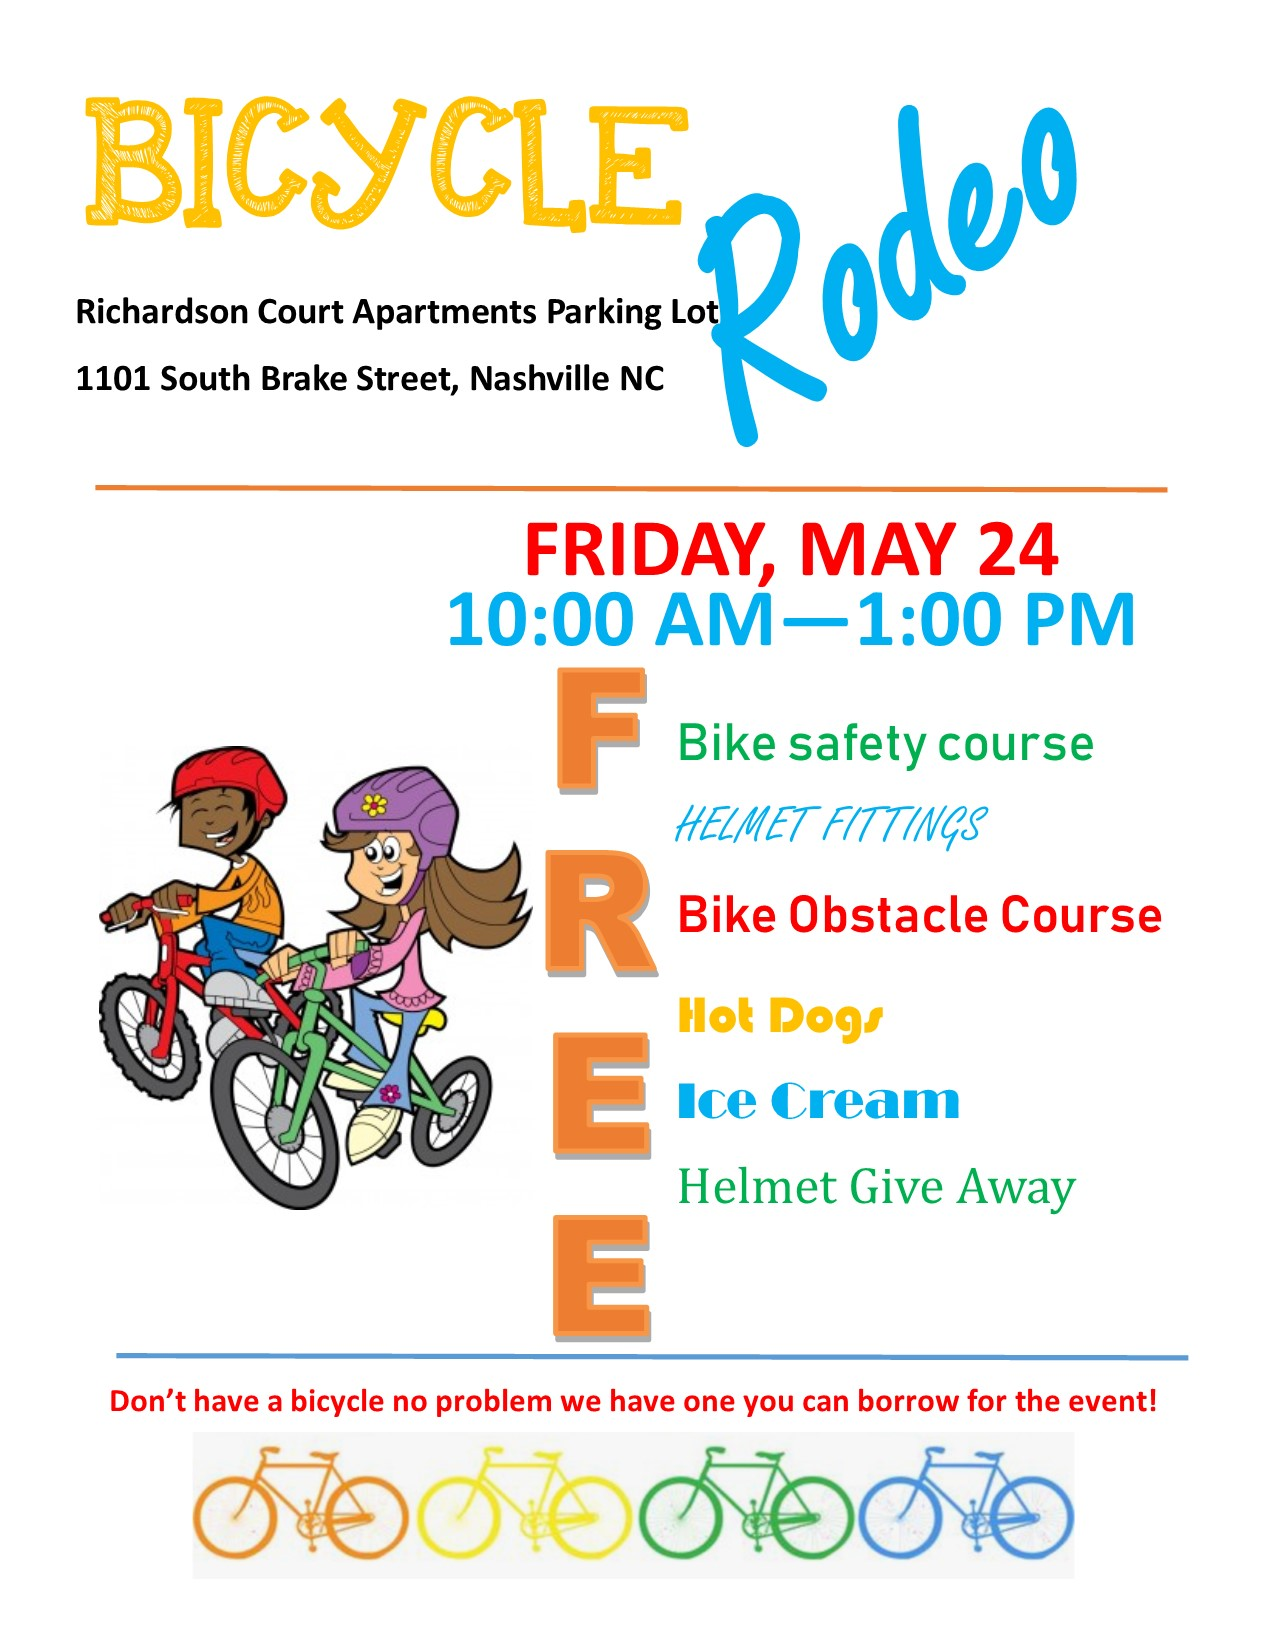 Bicycle Rodeo Flyer